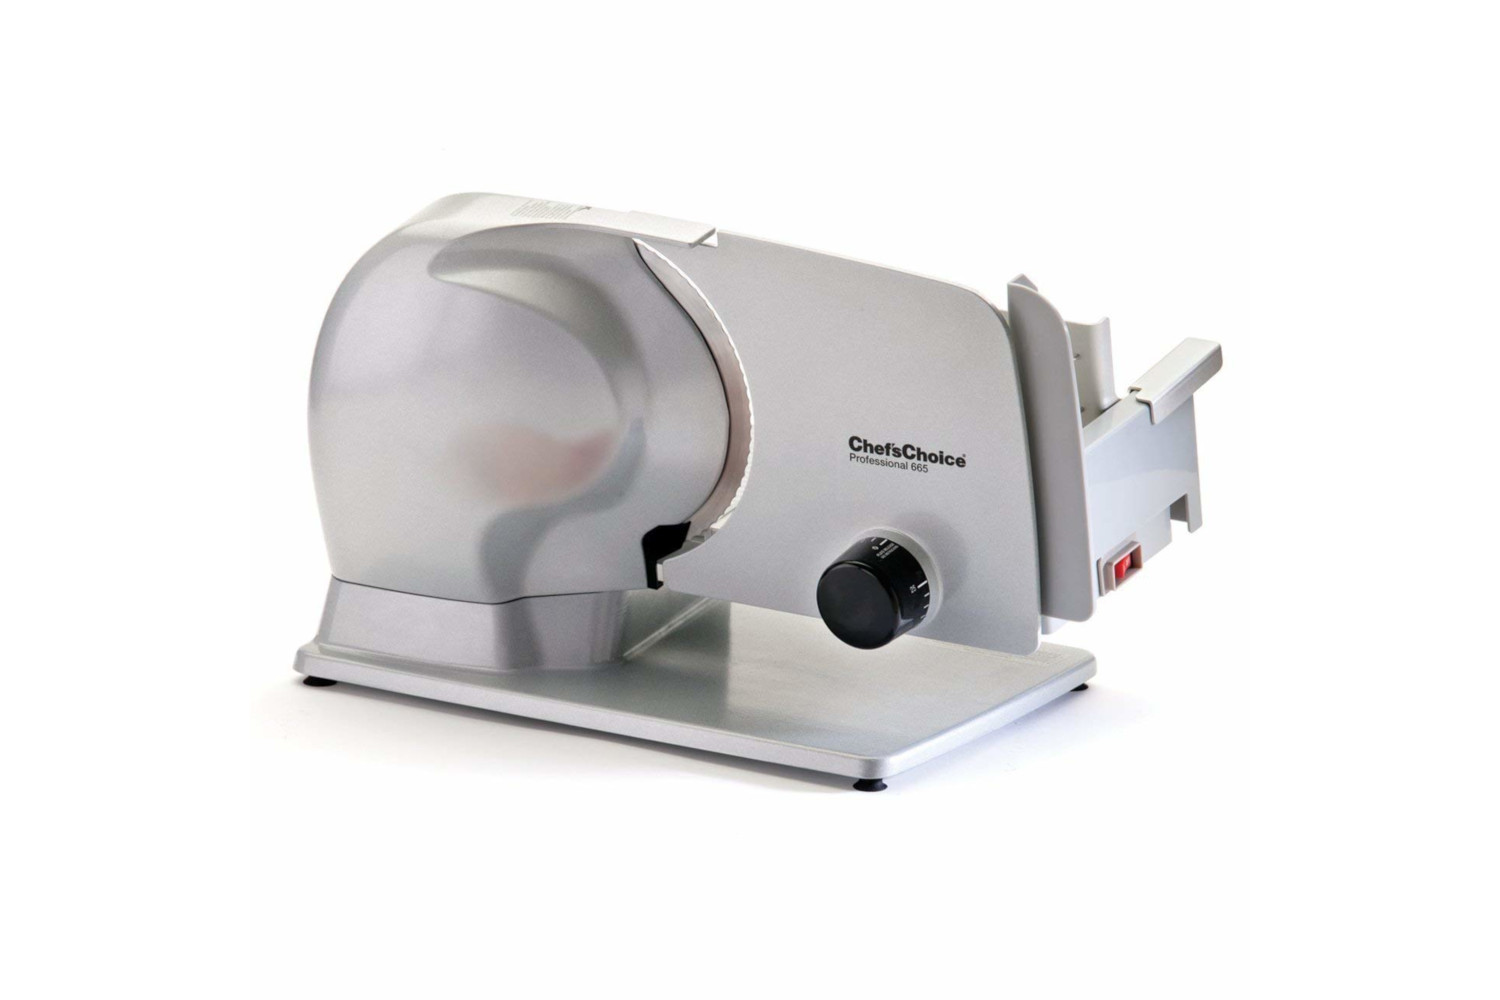 Chef'sChoice 665 Professional Electric Meat Slicer